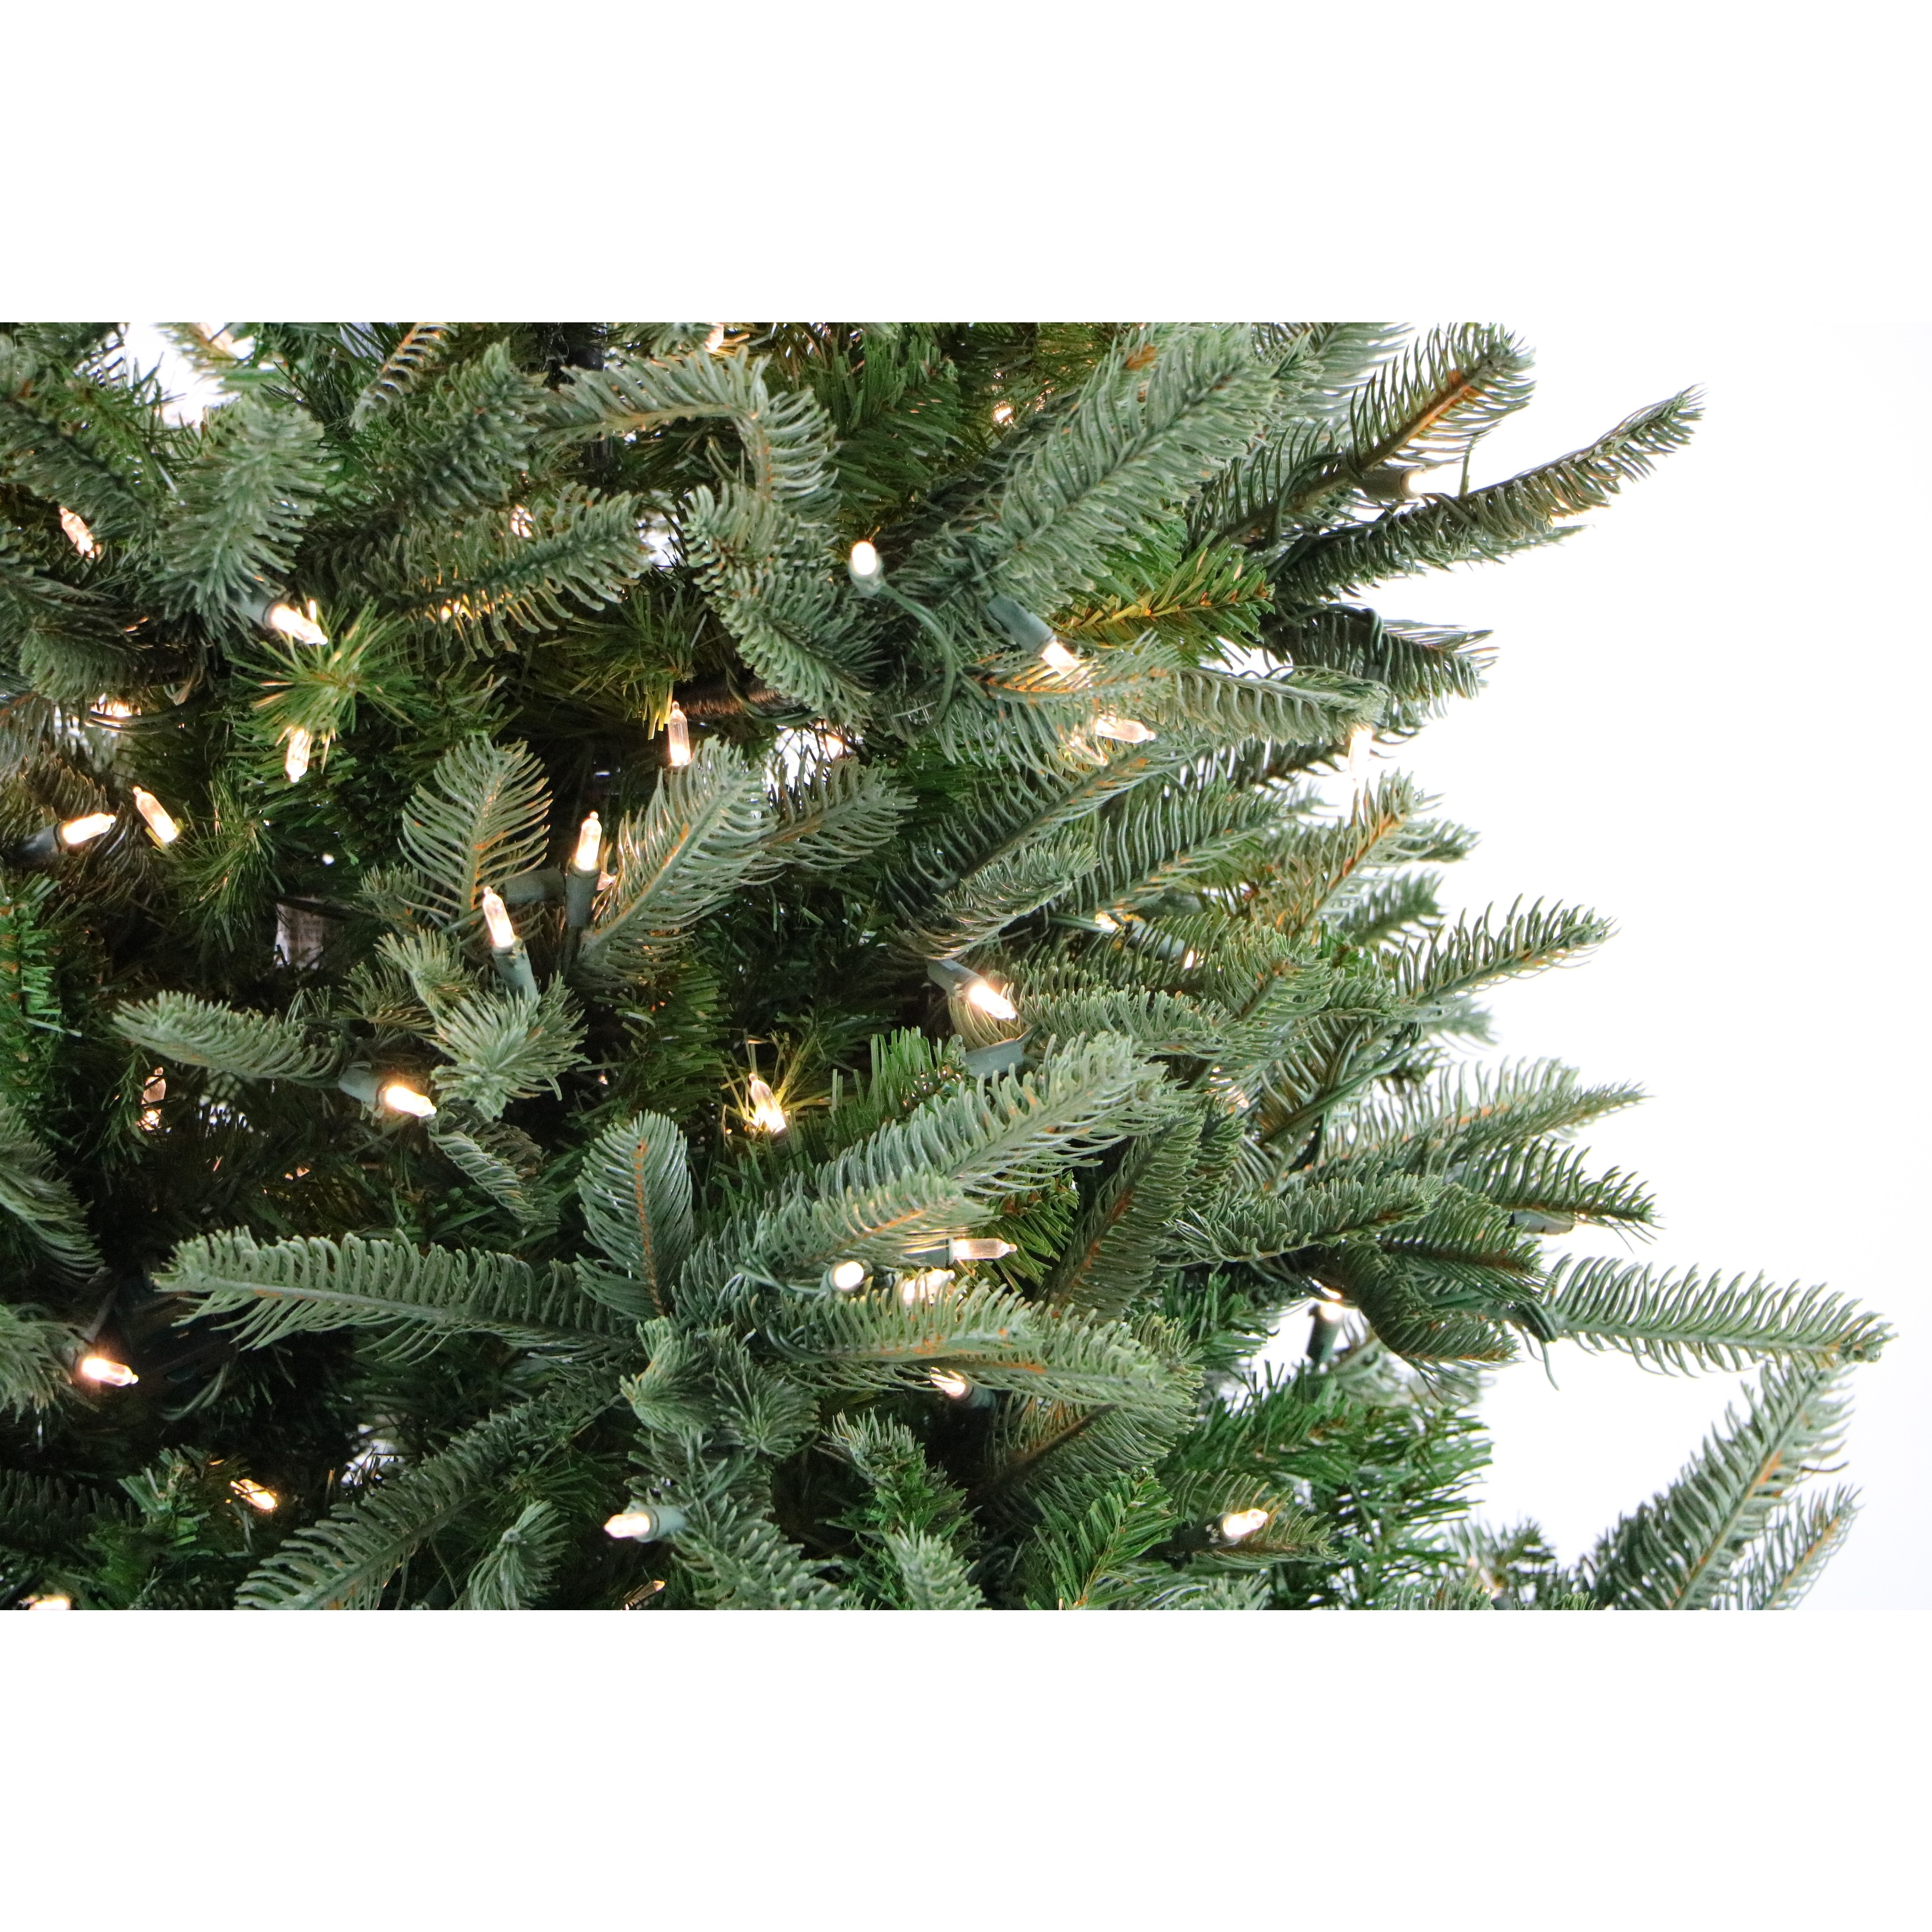 Shop Fraser Hill Farm 7.5-foot Noble Fir Christmas Tree with Smart ...